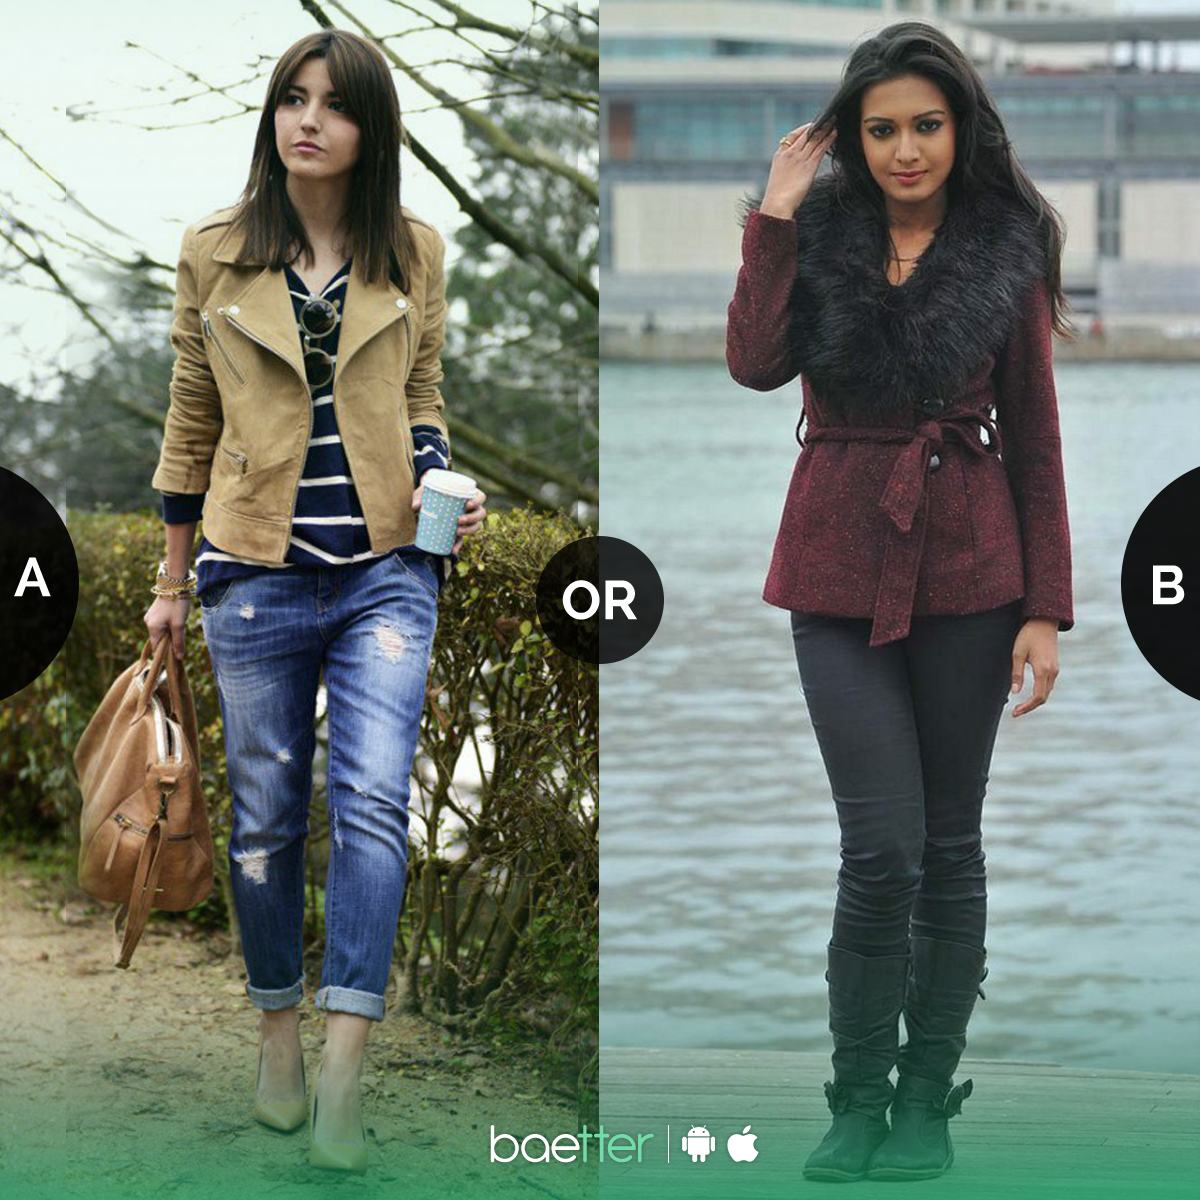 Which of the winter outfits would you like to wear? #coats or ...